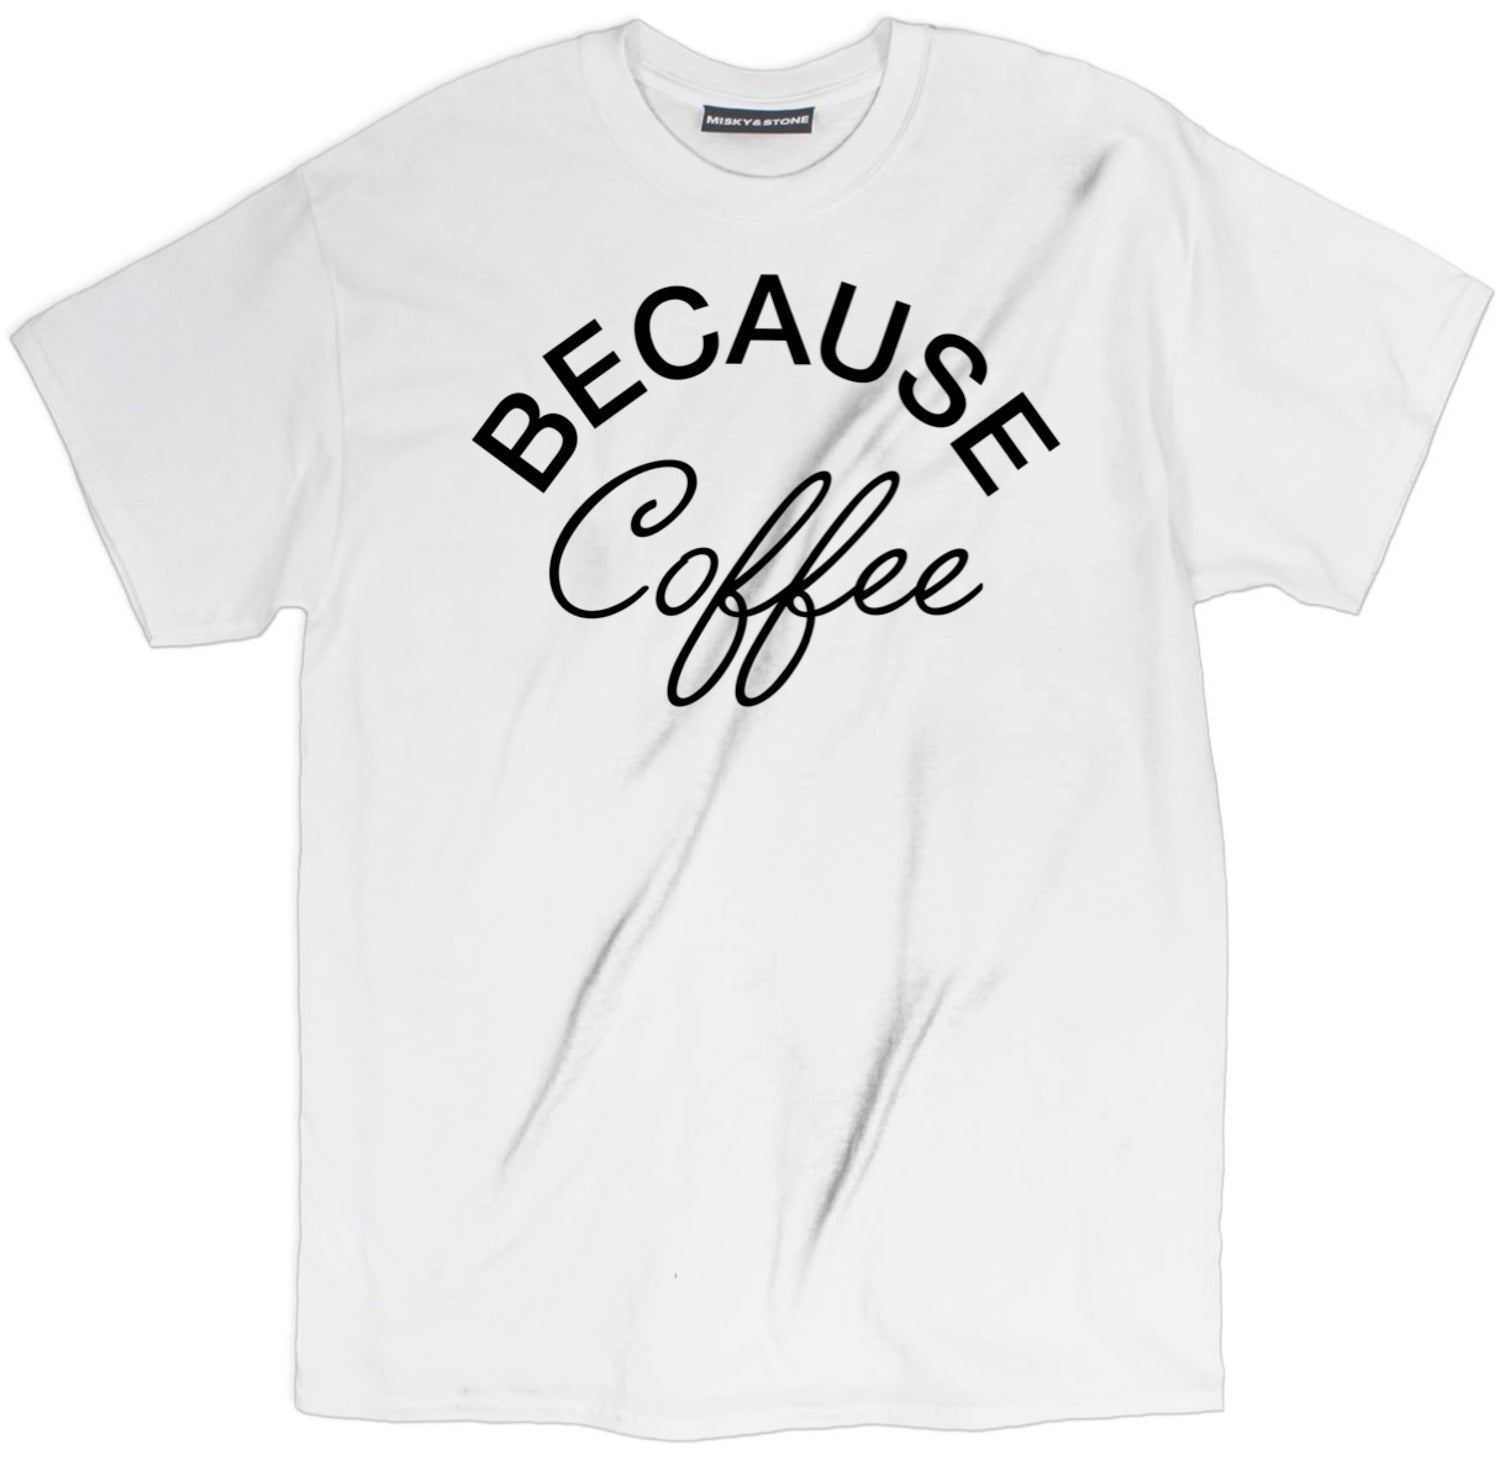 Because Coffee Tee